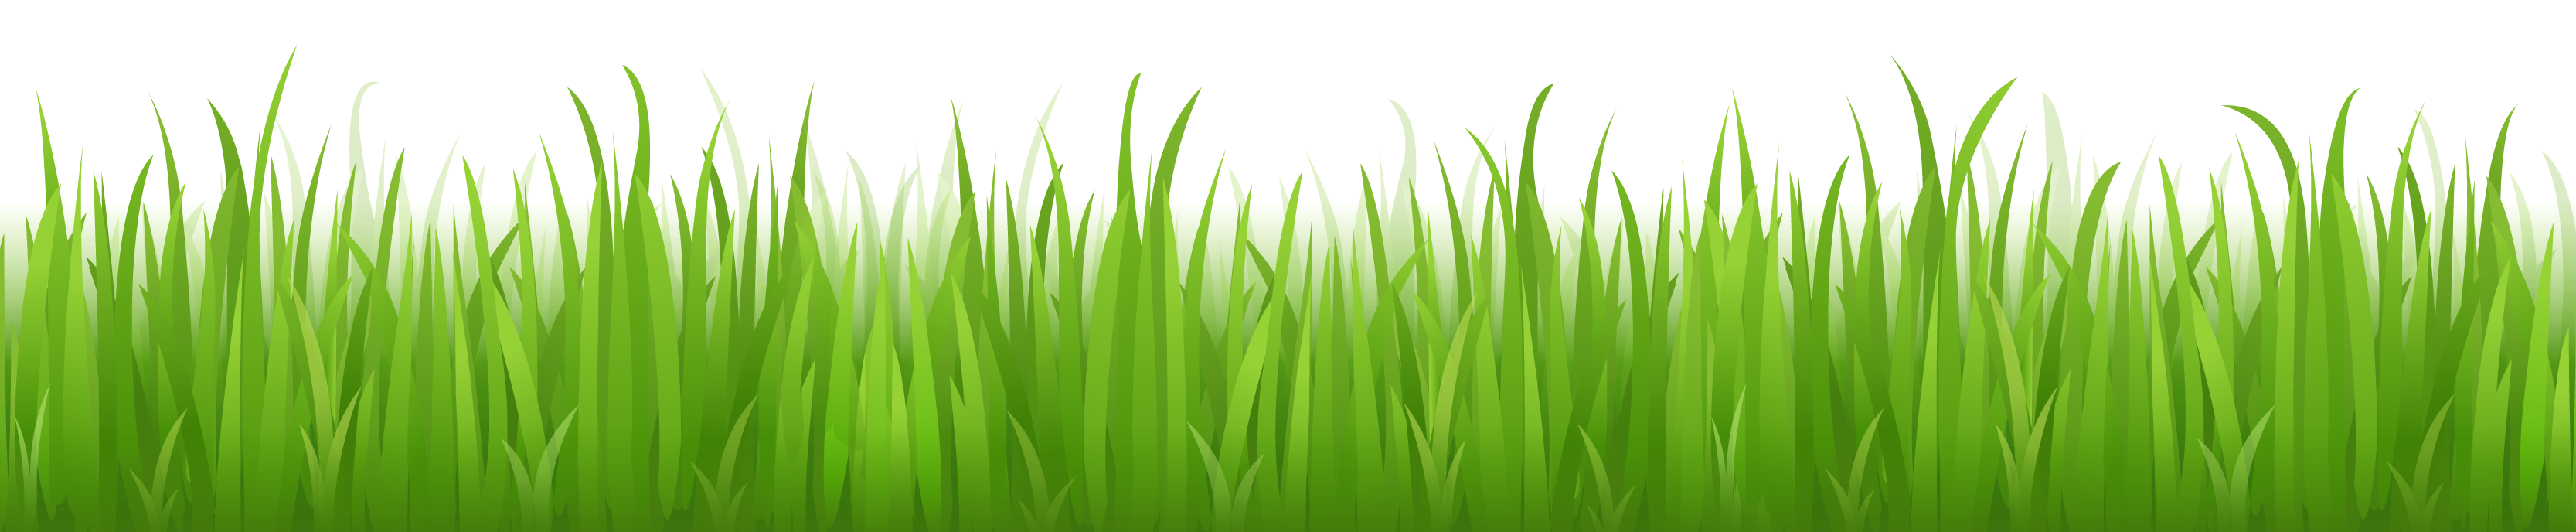 Cartoon grass png. Images pictures image green